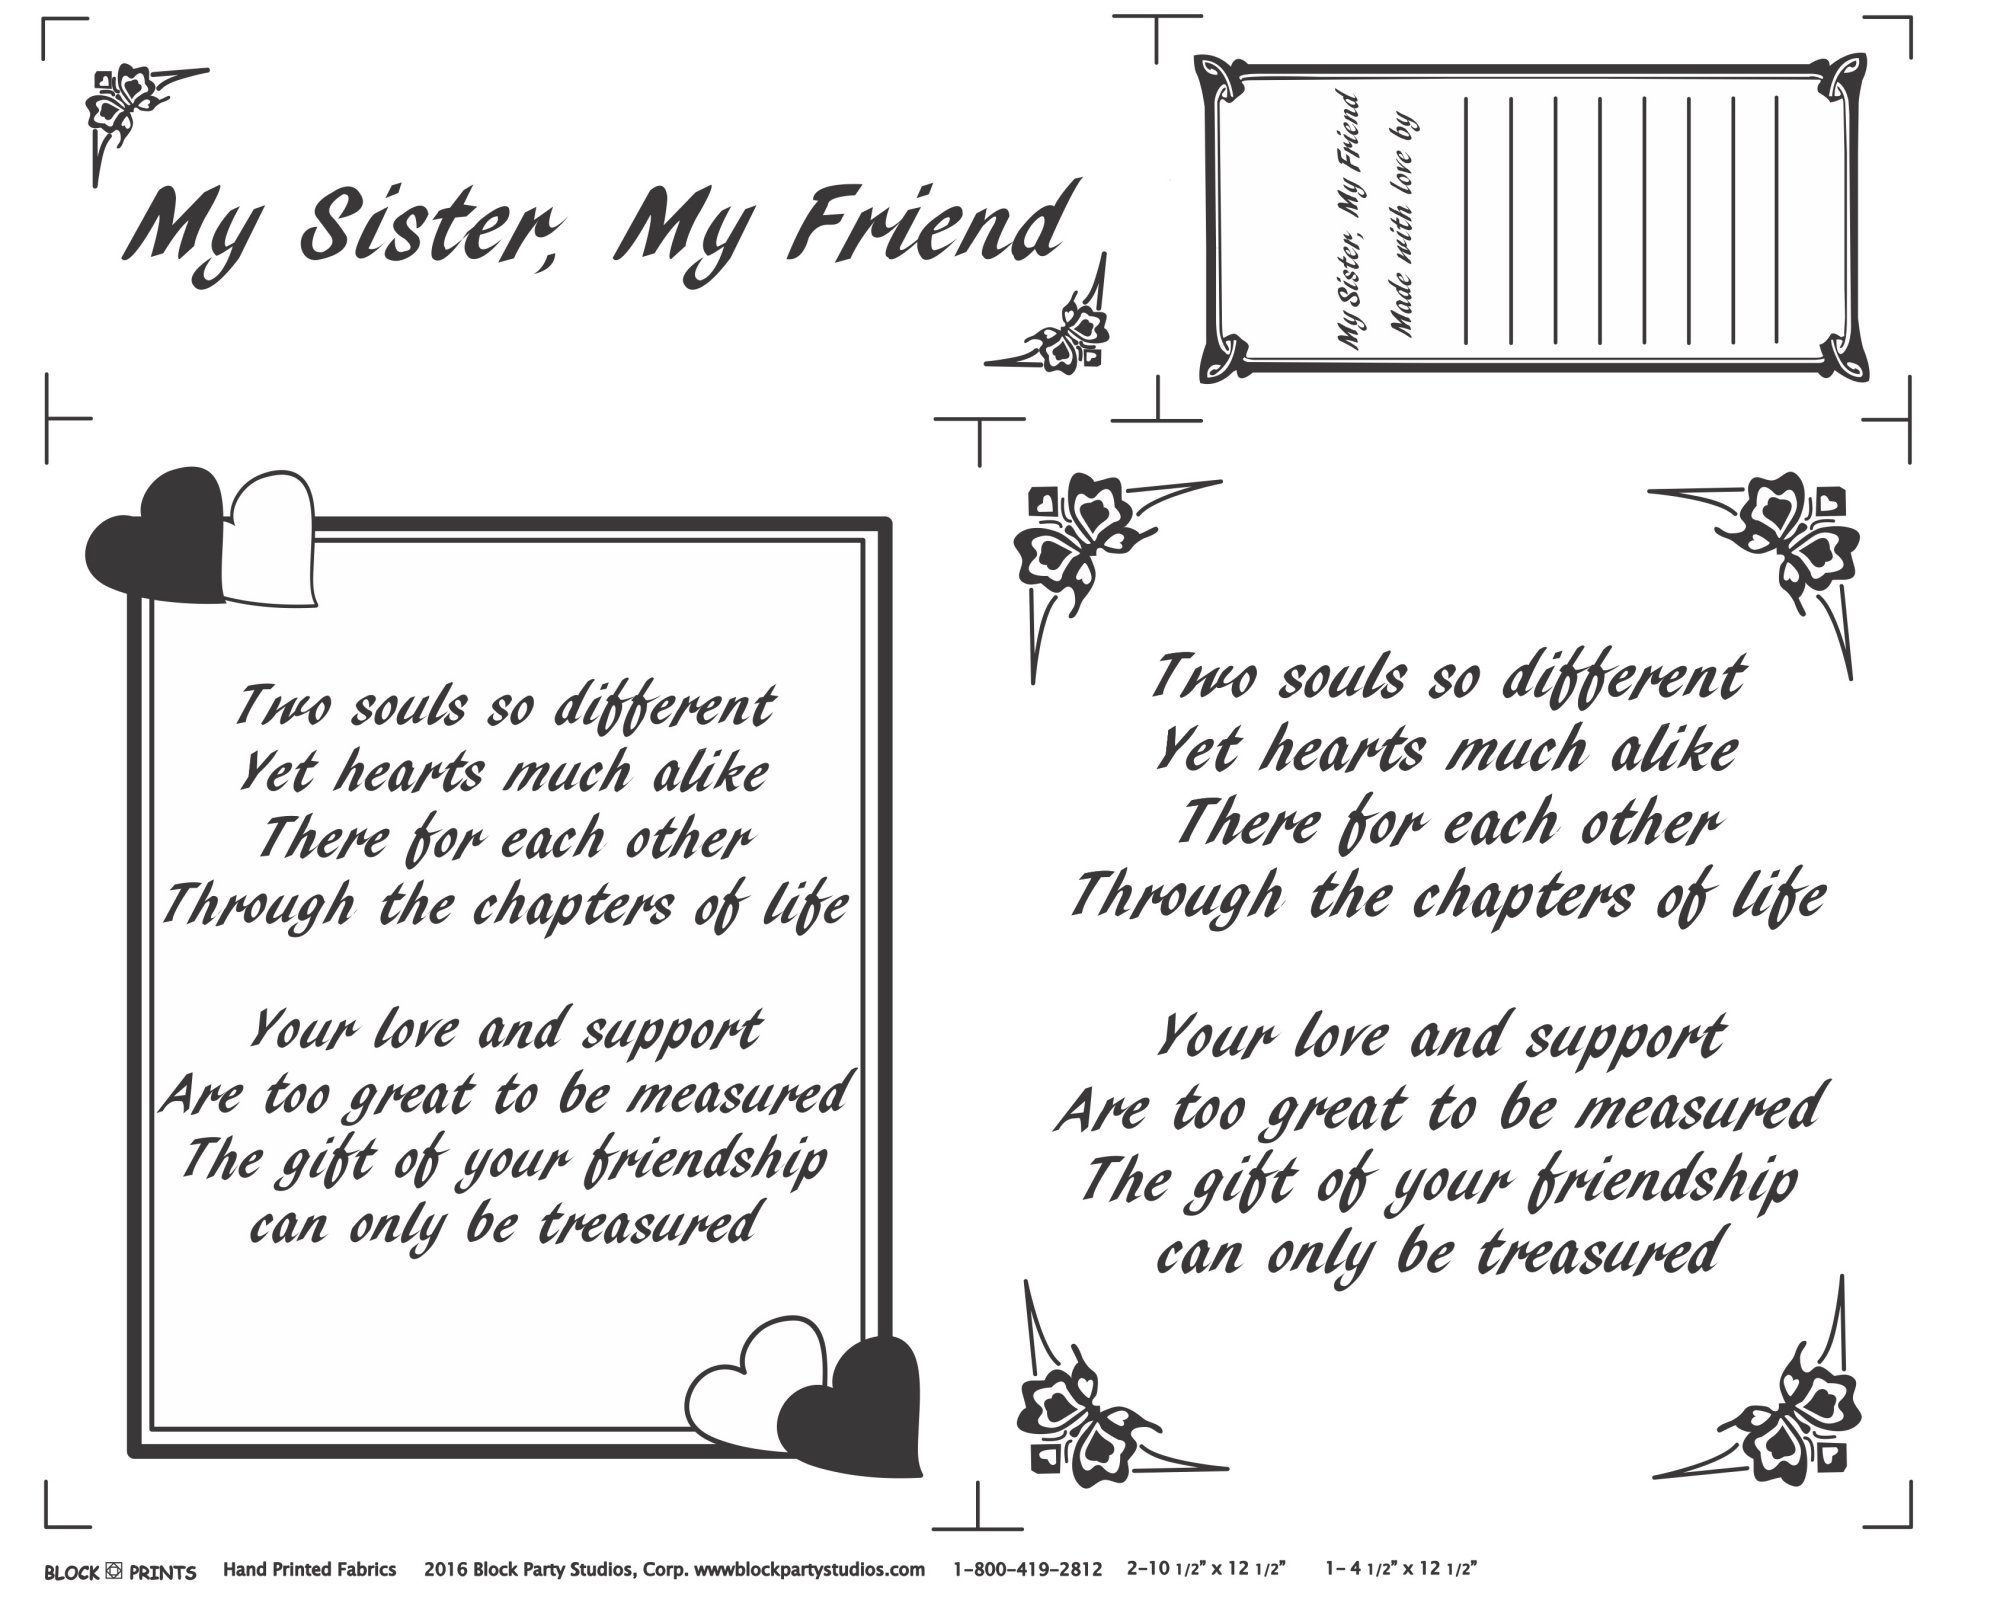 My Sister My Friend Fabric Panel